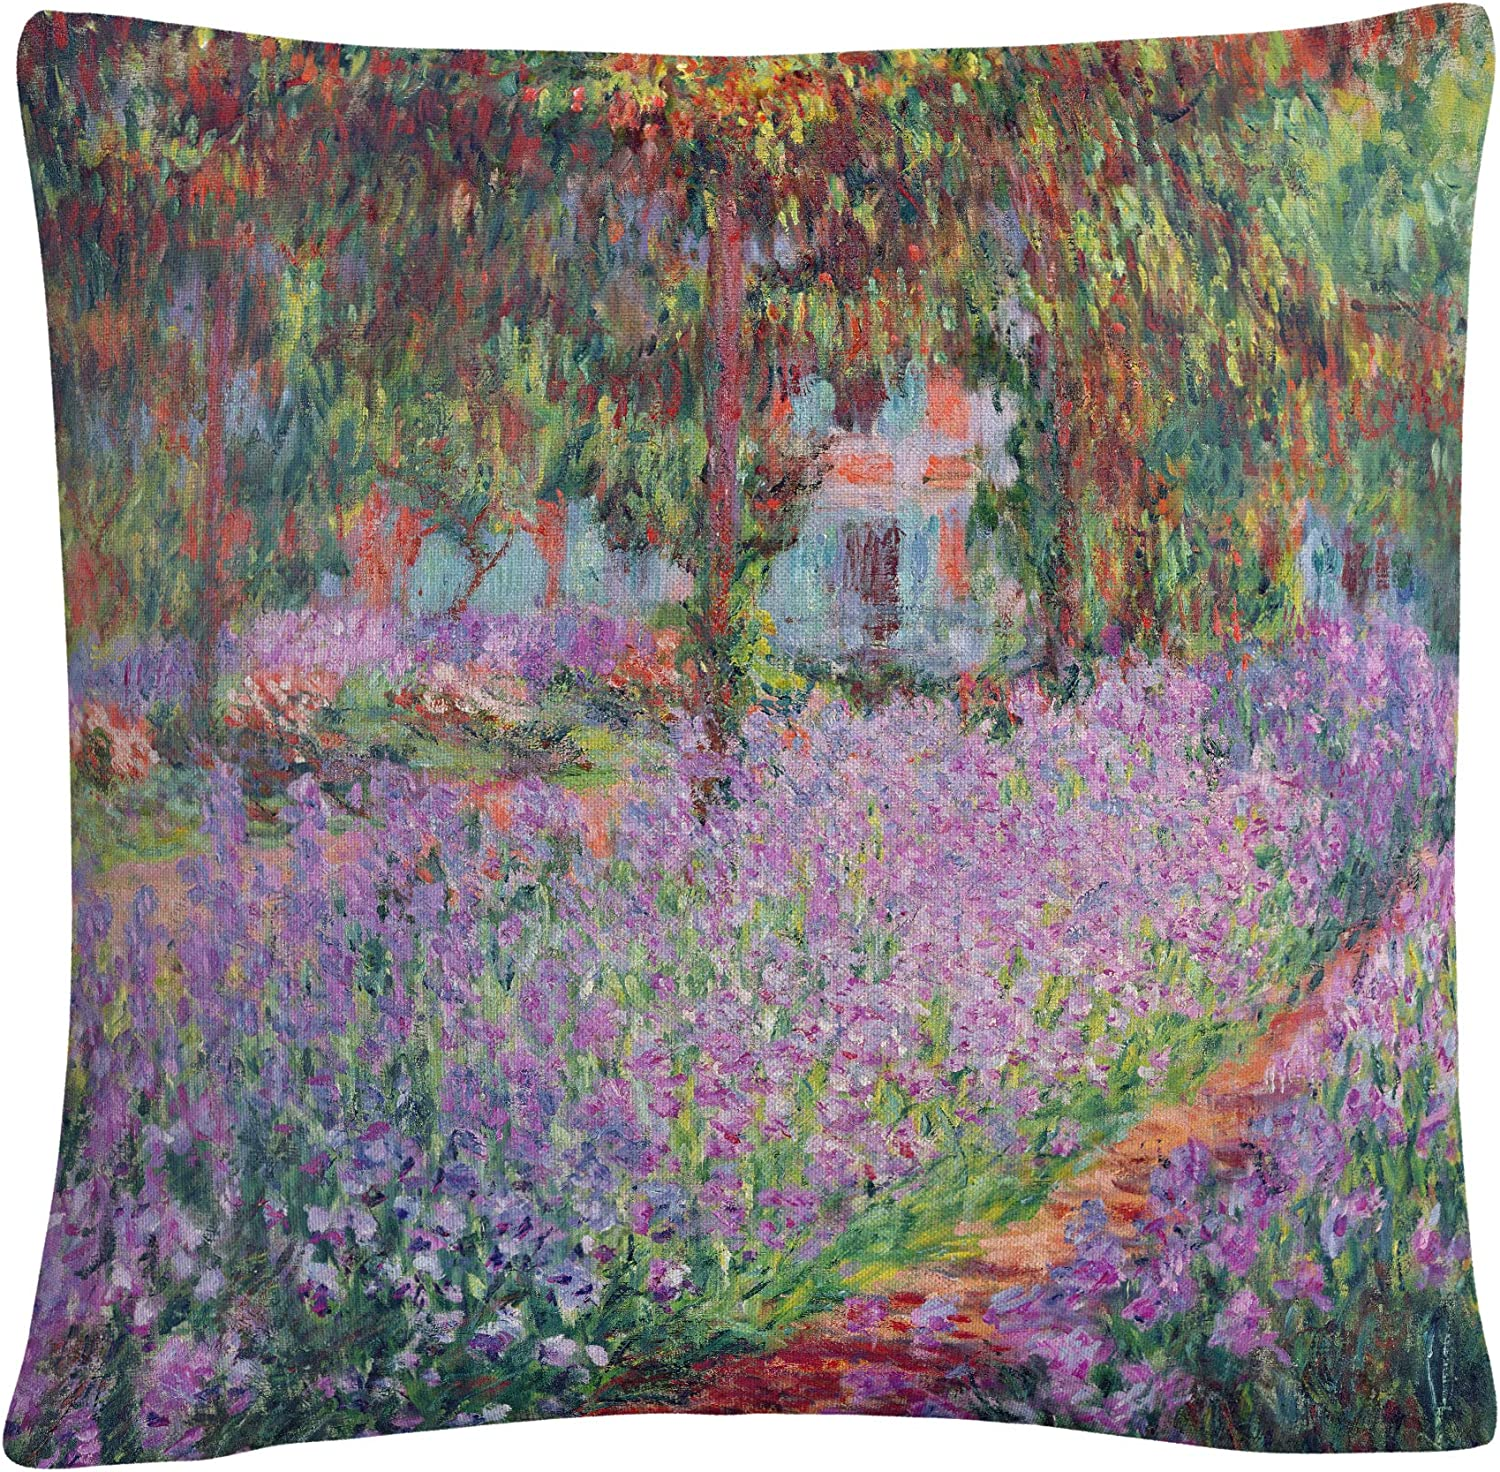 Trademark Fine Art Artists Garden at Giverny by Claude Monet, 16x16 Decorative Throw Pillow, Multi-Color